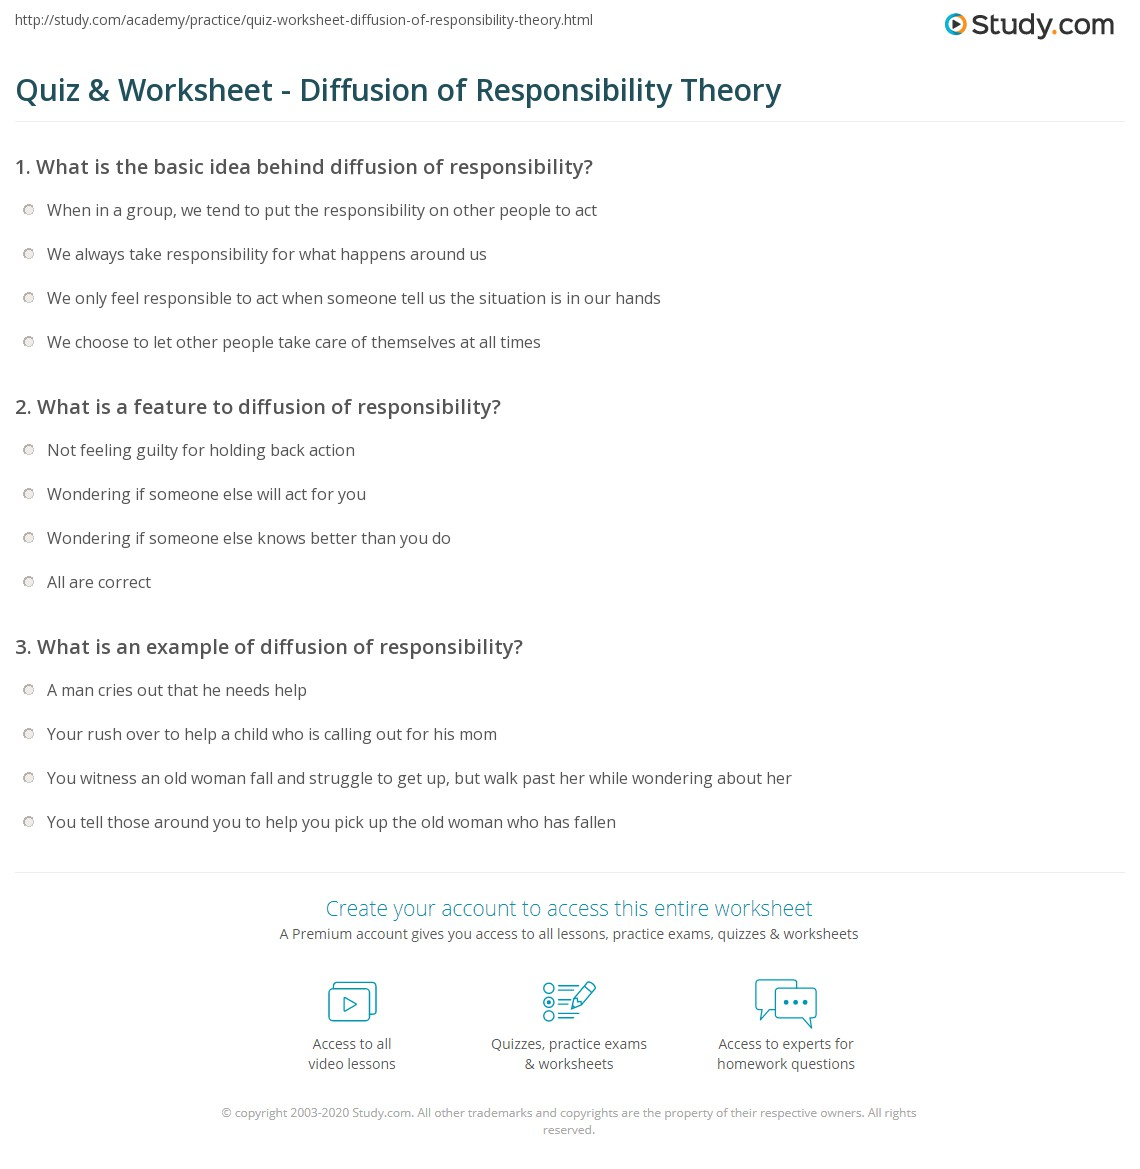 Quiz Worksheet Diffusion Of Responsibility Theory Study